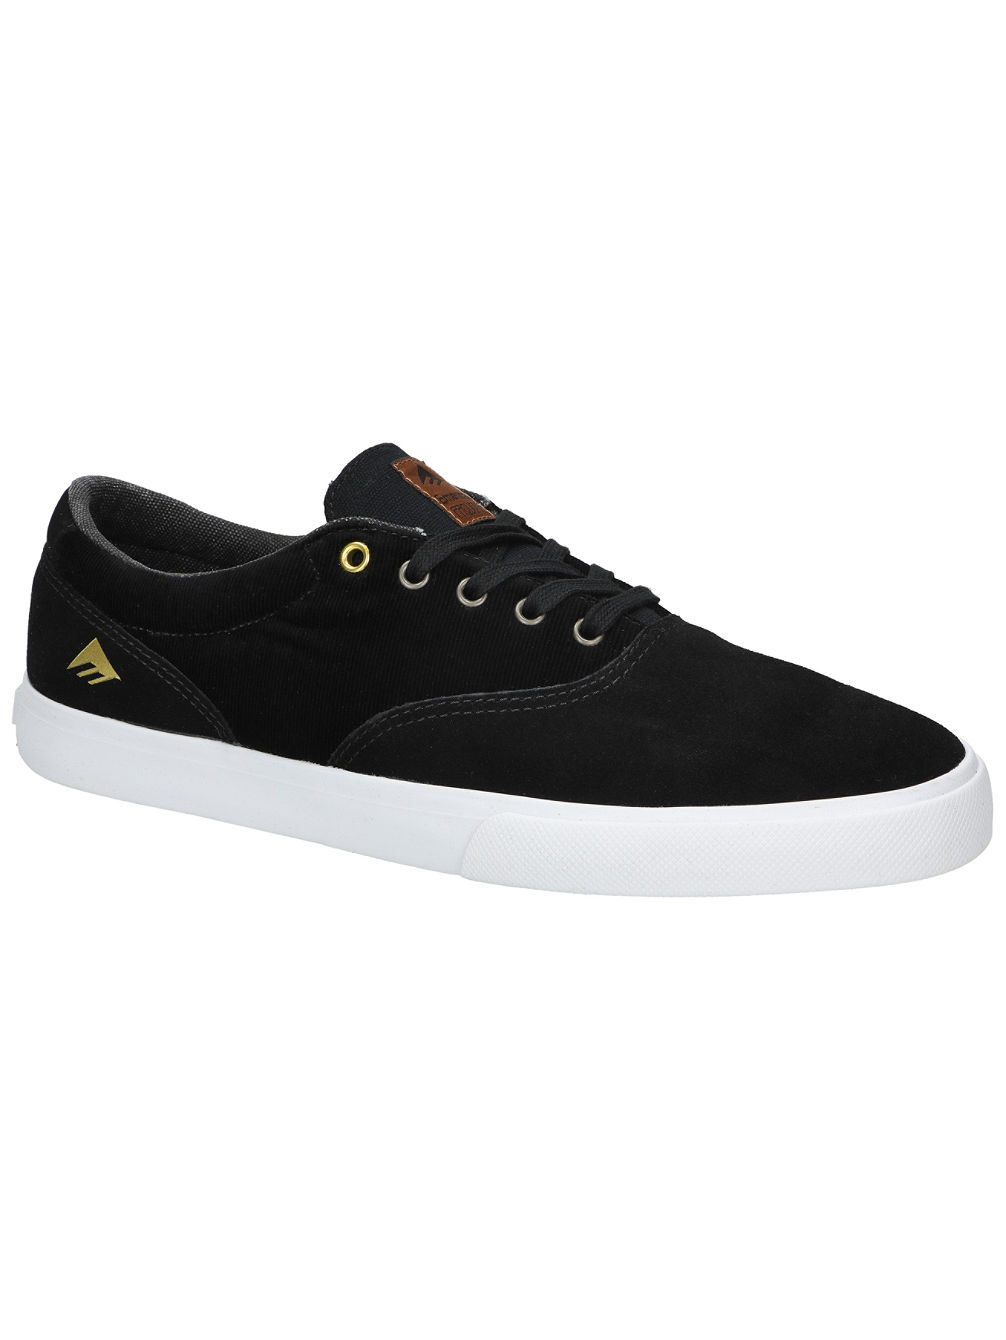 Provost Slim Vulc Skate Shoes